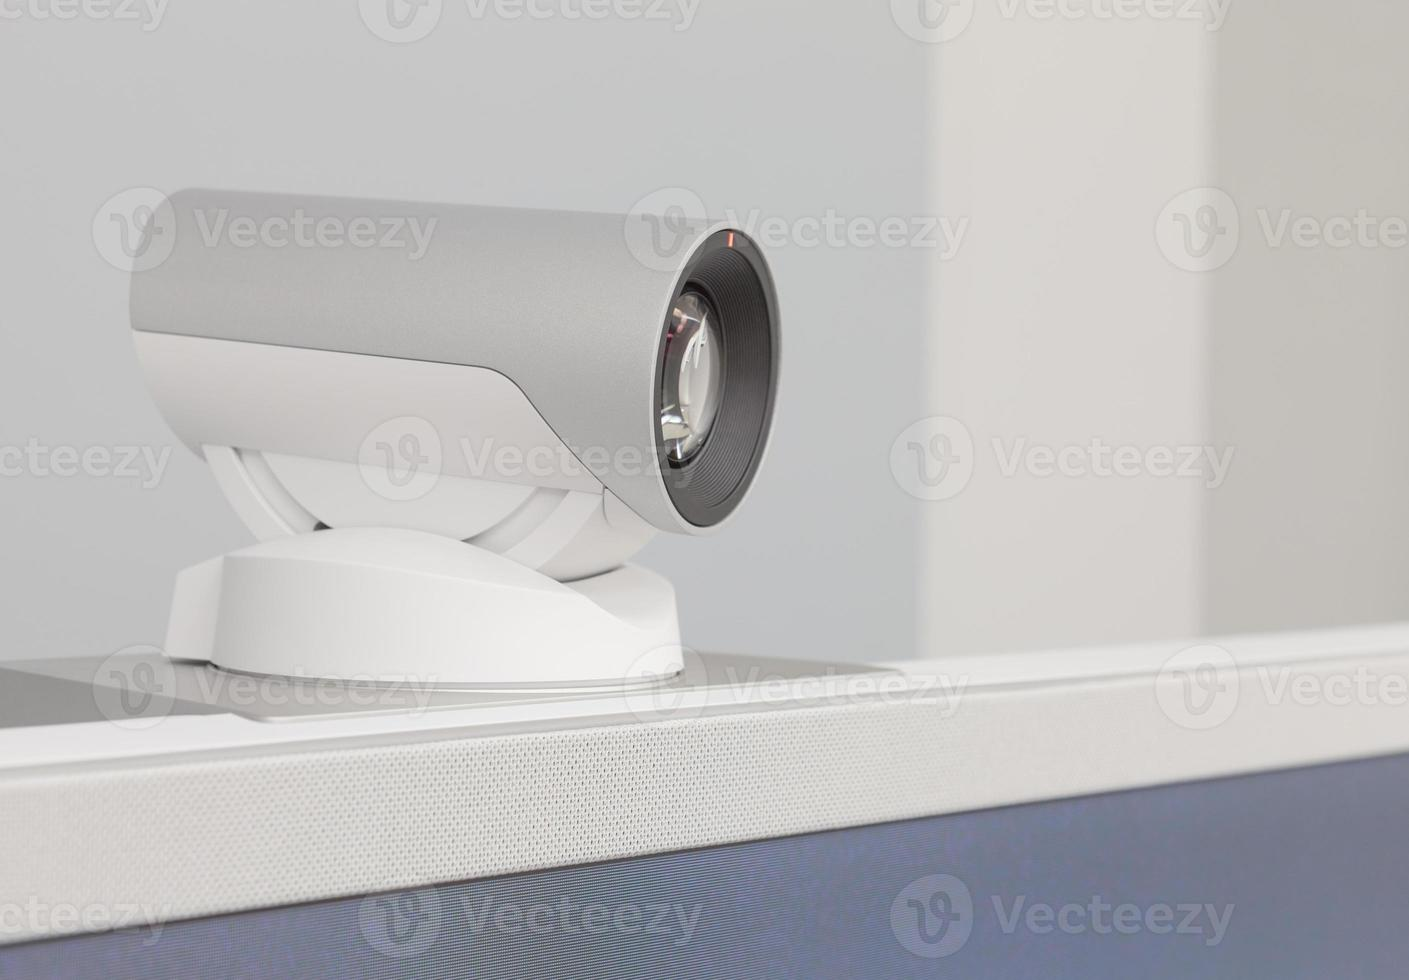 teleconference, video conference or telepresence camera closeup photo